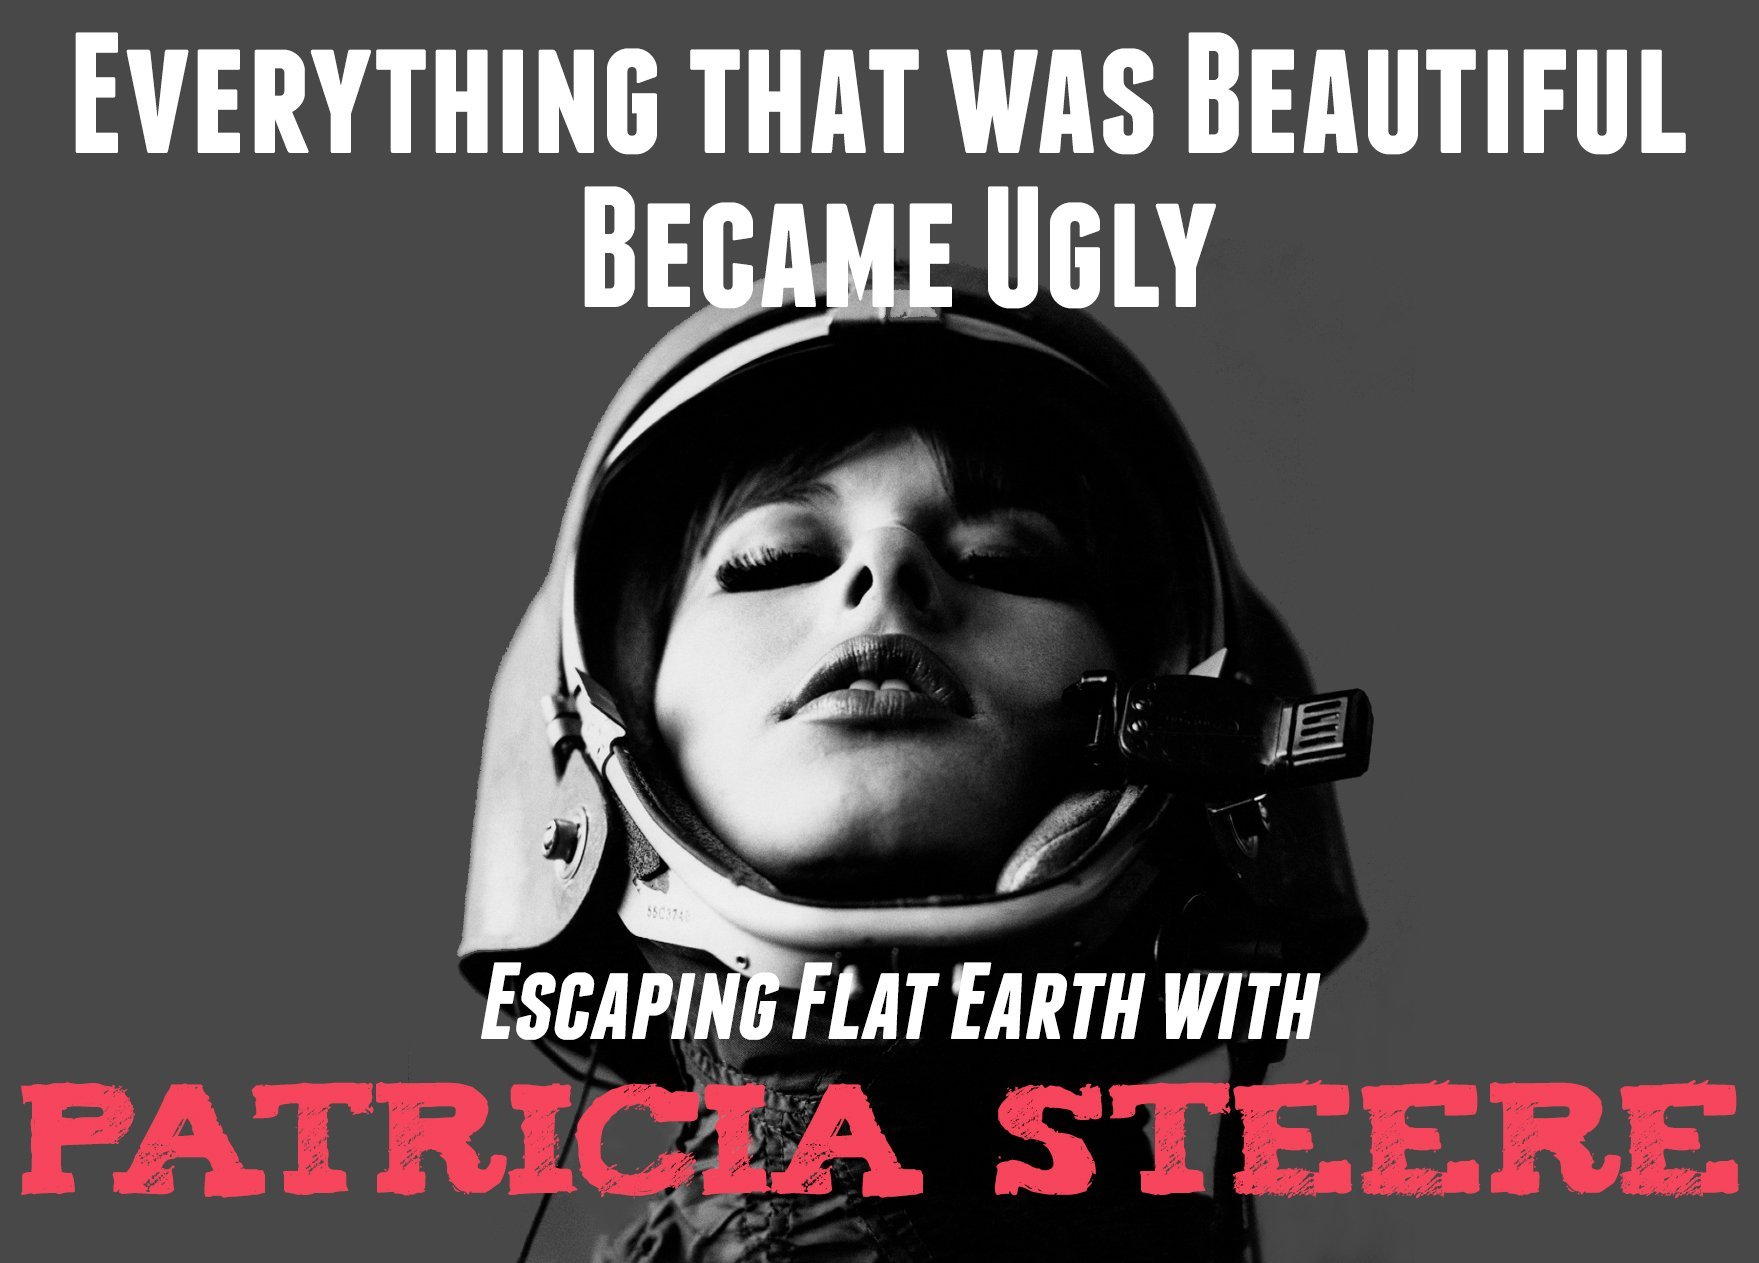 Everything That Was Beautiful Became Ugly | Escaping Flat Earth with Patricia Steere